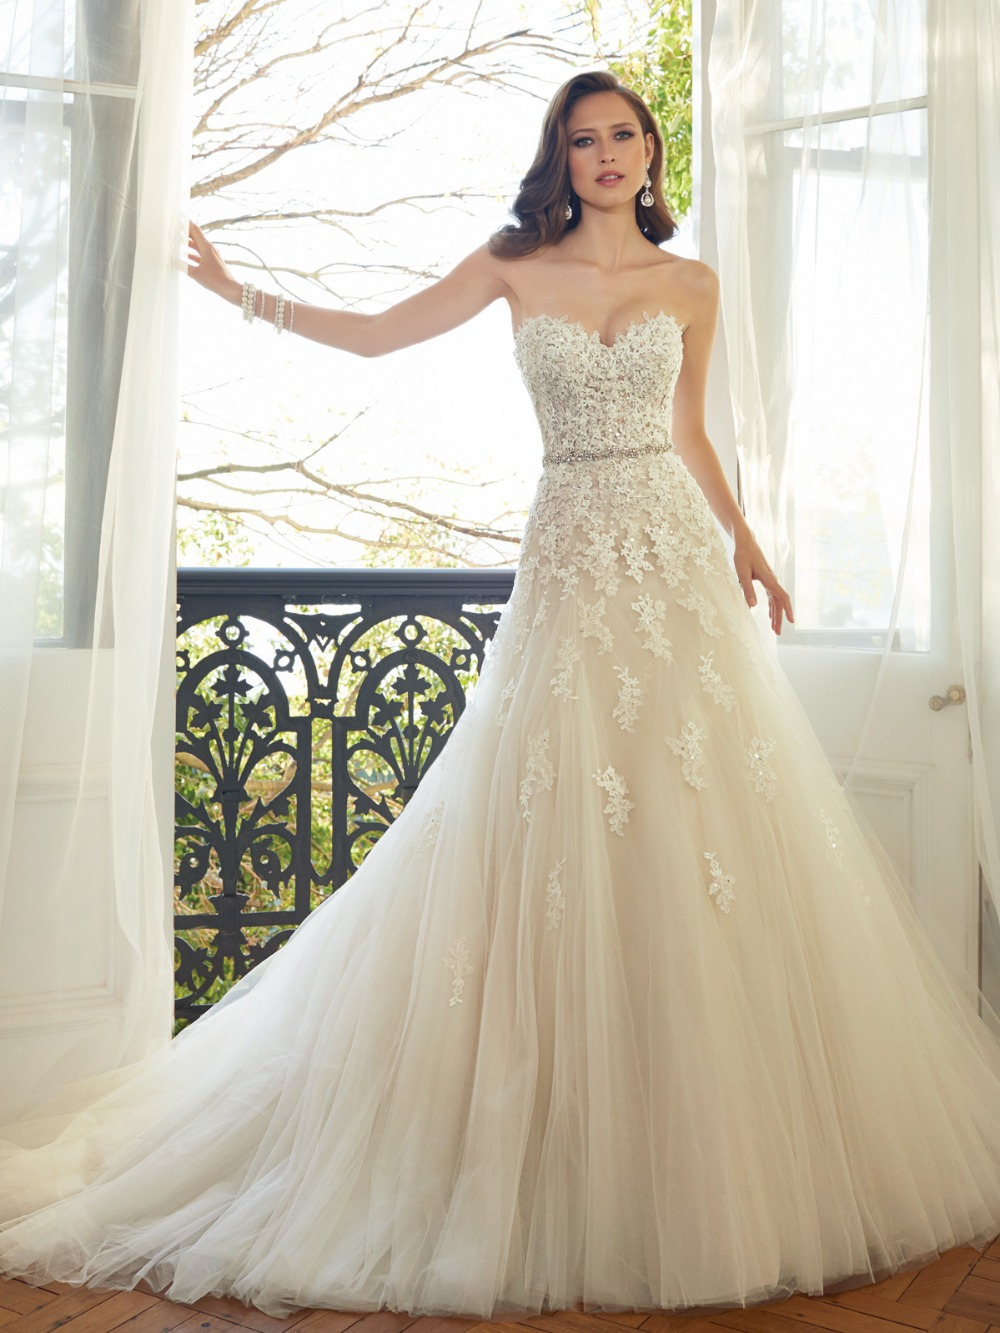 Emejing Champagne Color Wedding Dresses Pictures - Styles & Ideas ...